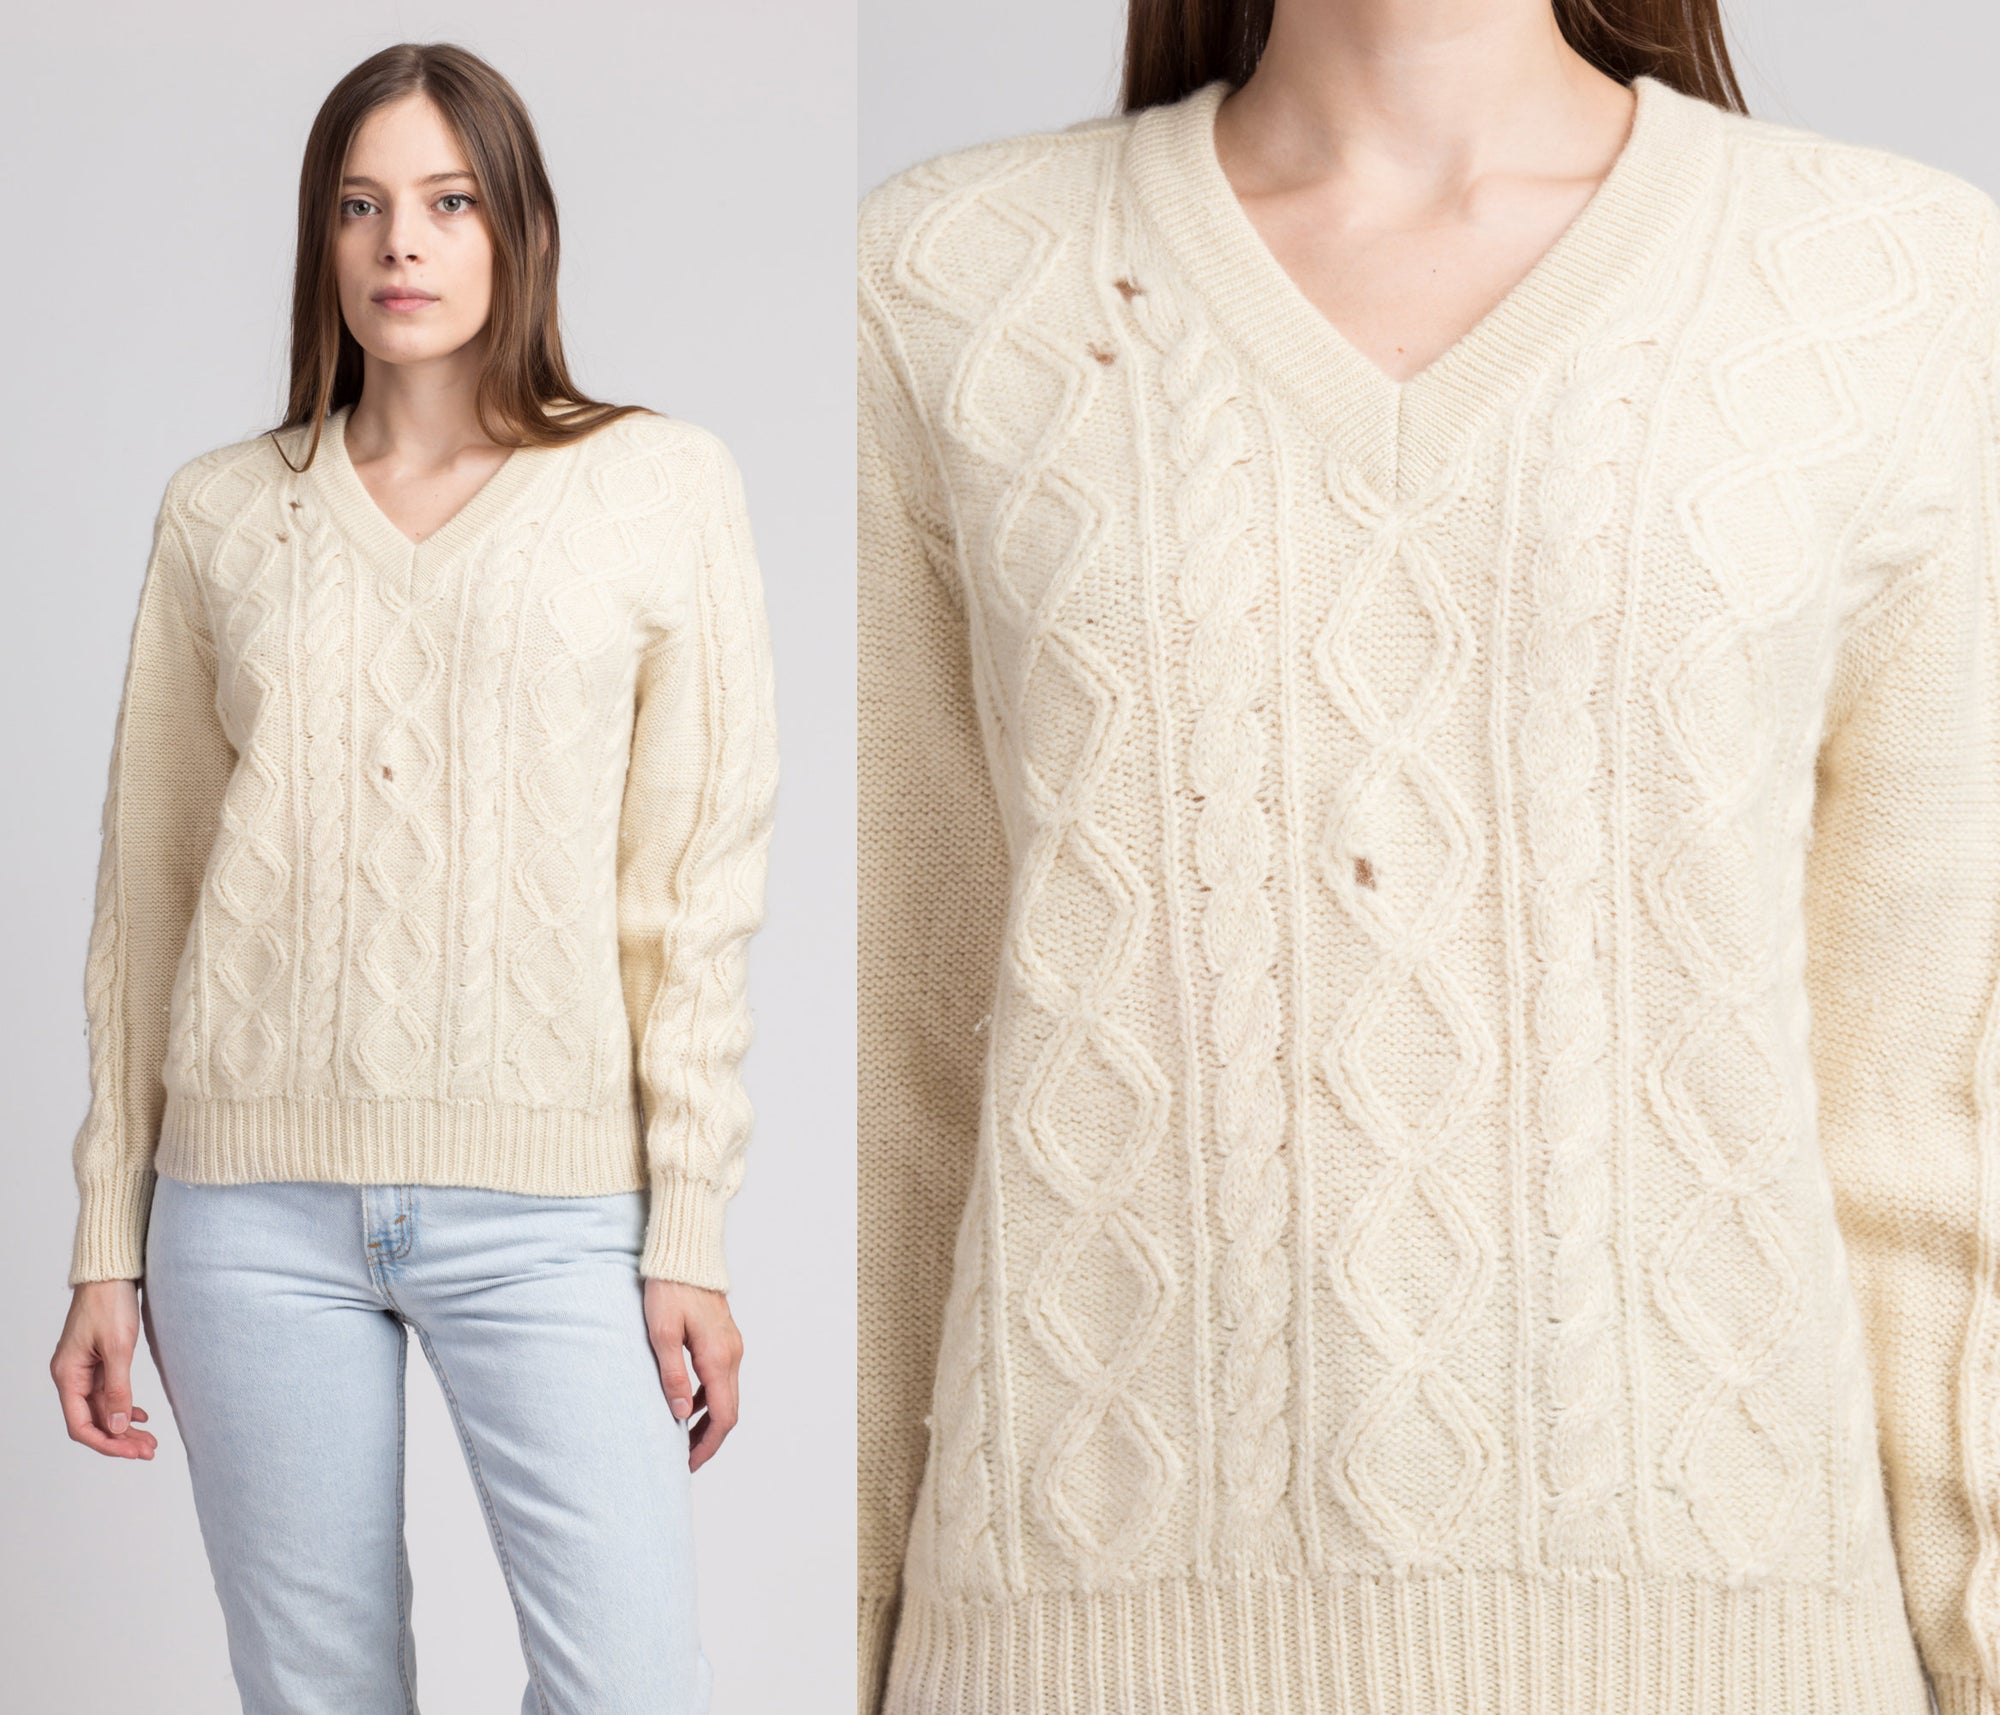 70s Cable Knit Fisherman Sweater - Small